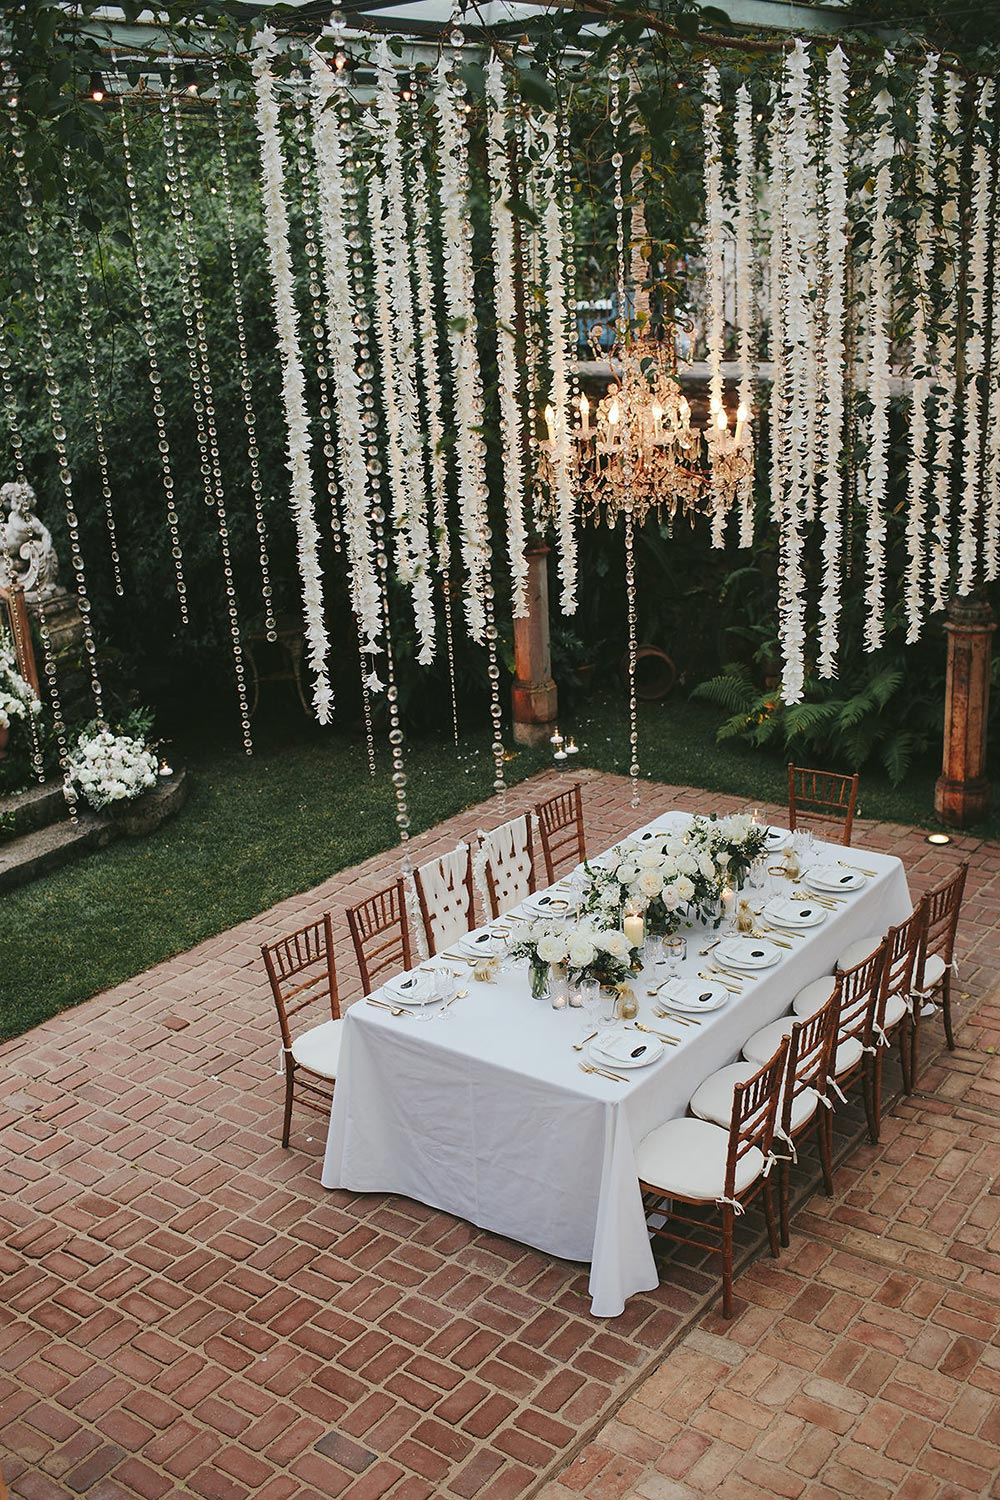 al fresco Maui wedding reception with orchids and crystals